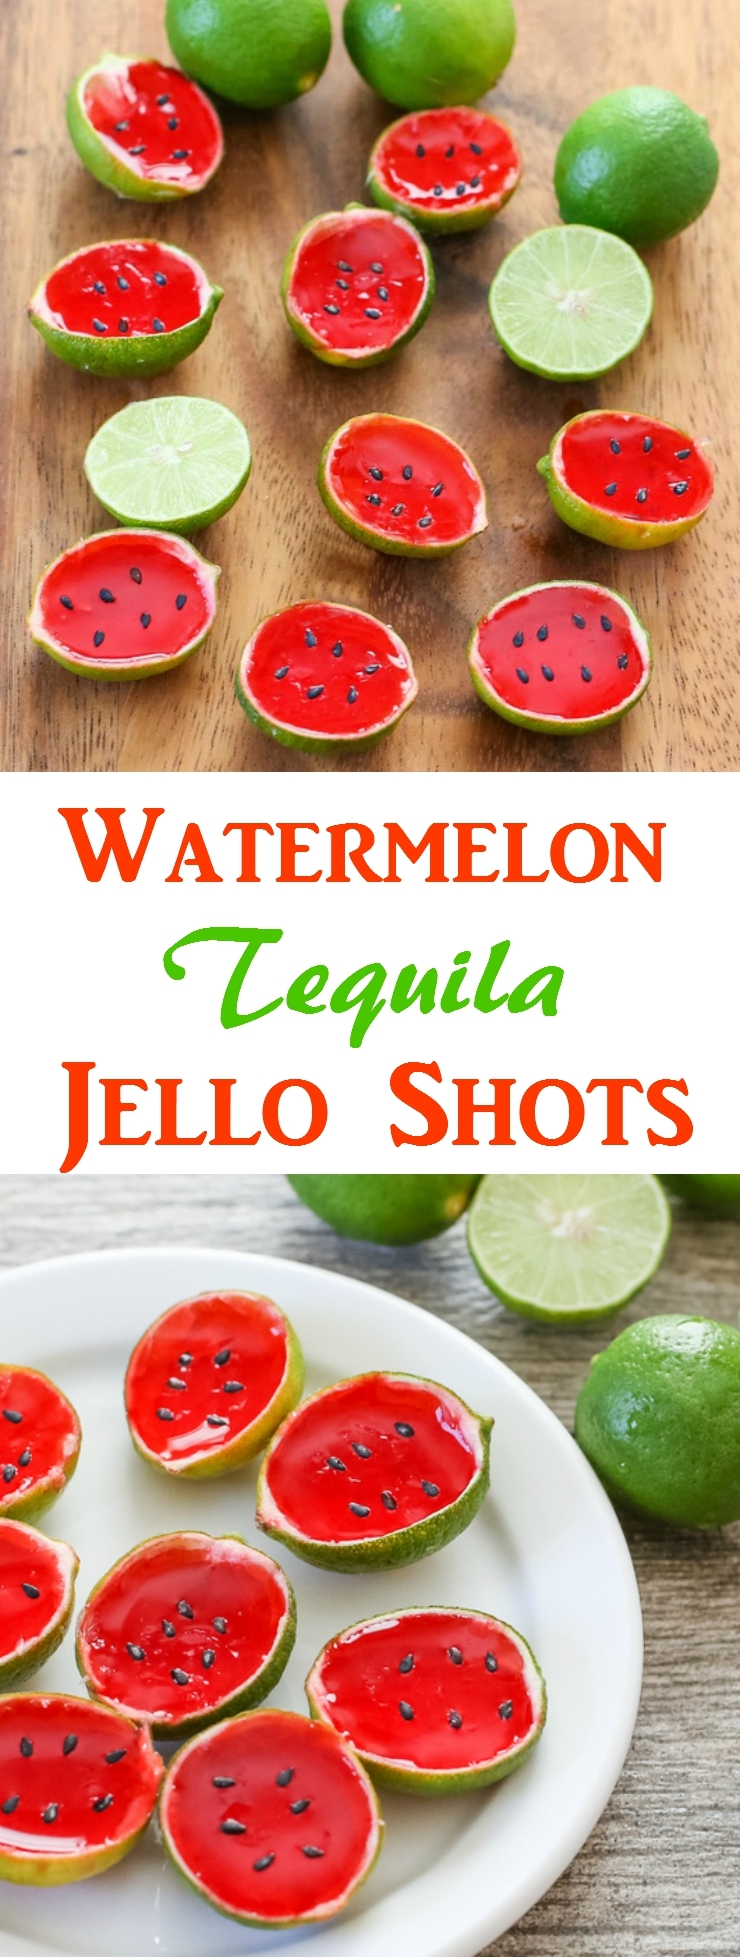 watermelon tequila jello shots photo collage